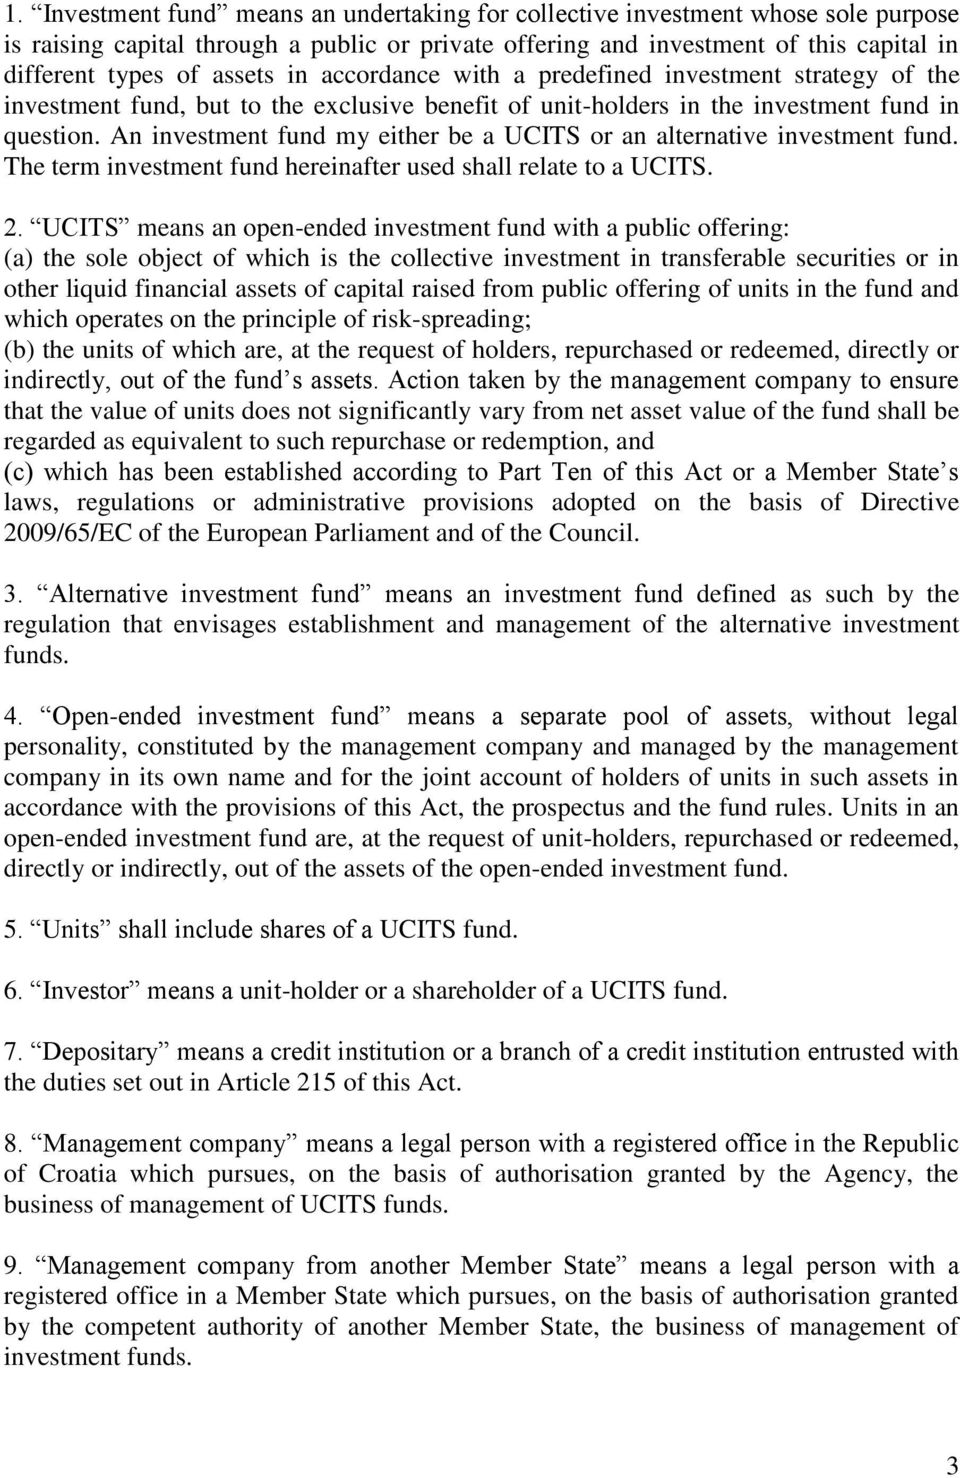 An investment fund my either be a UCITS or an alternative investment fund. The term investment fund hereinafter used shall relate to a UCITS. 2.